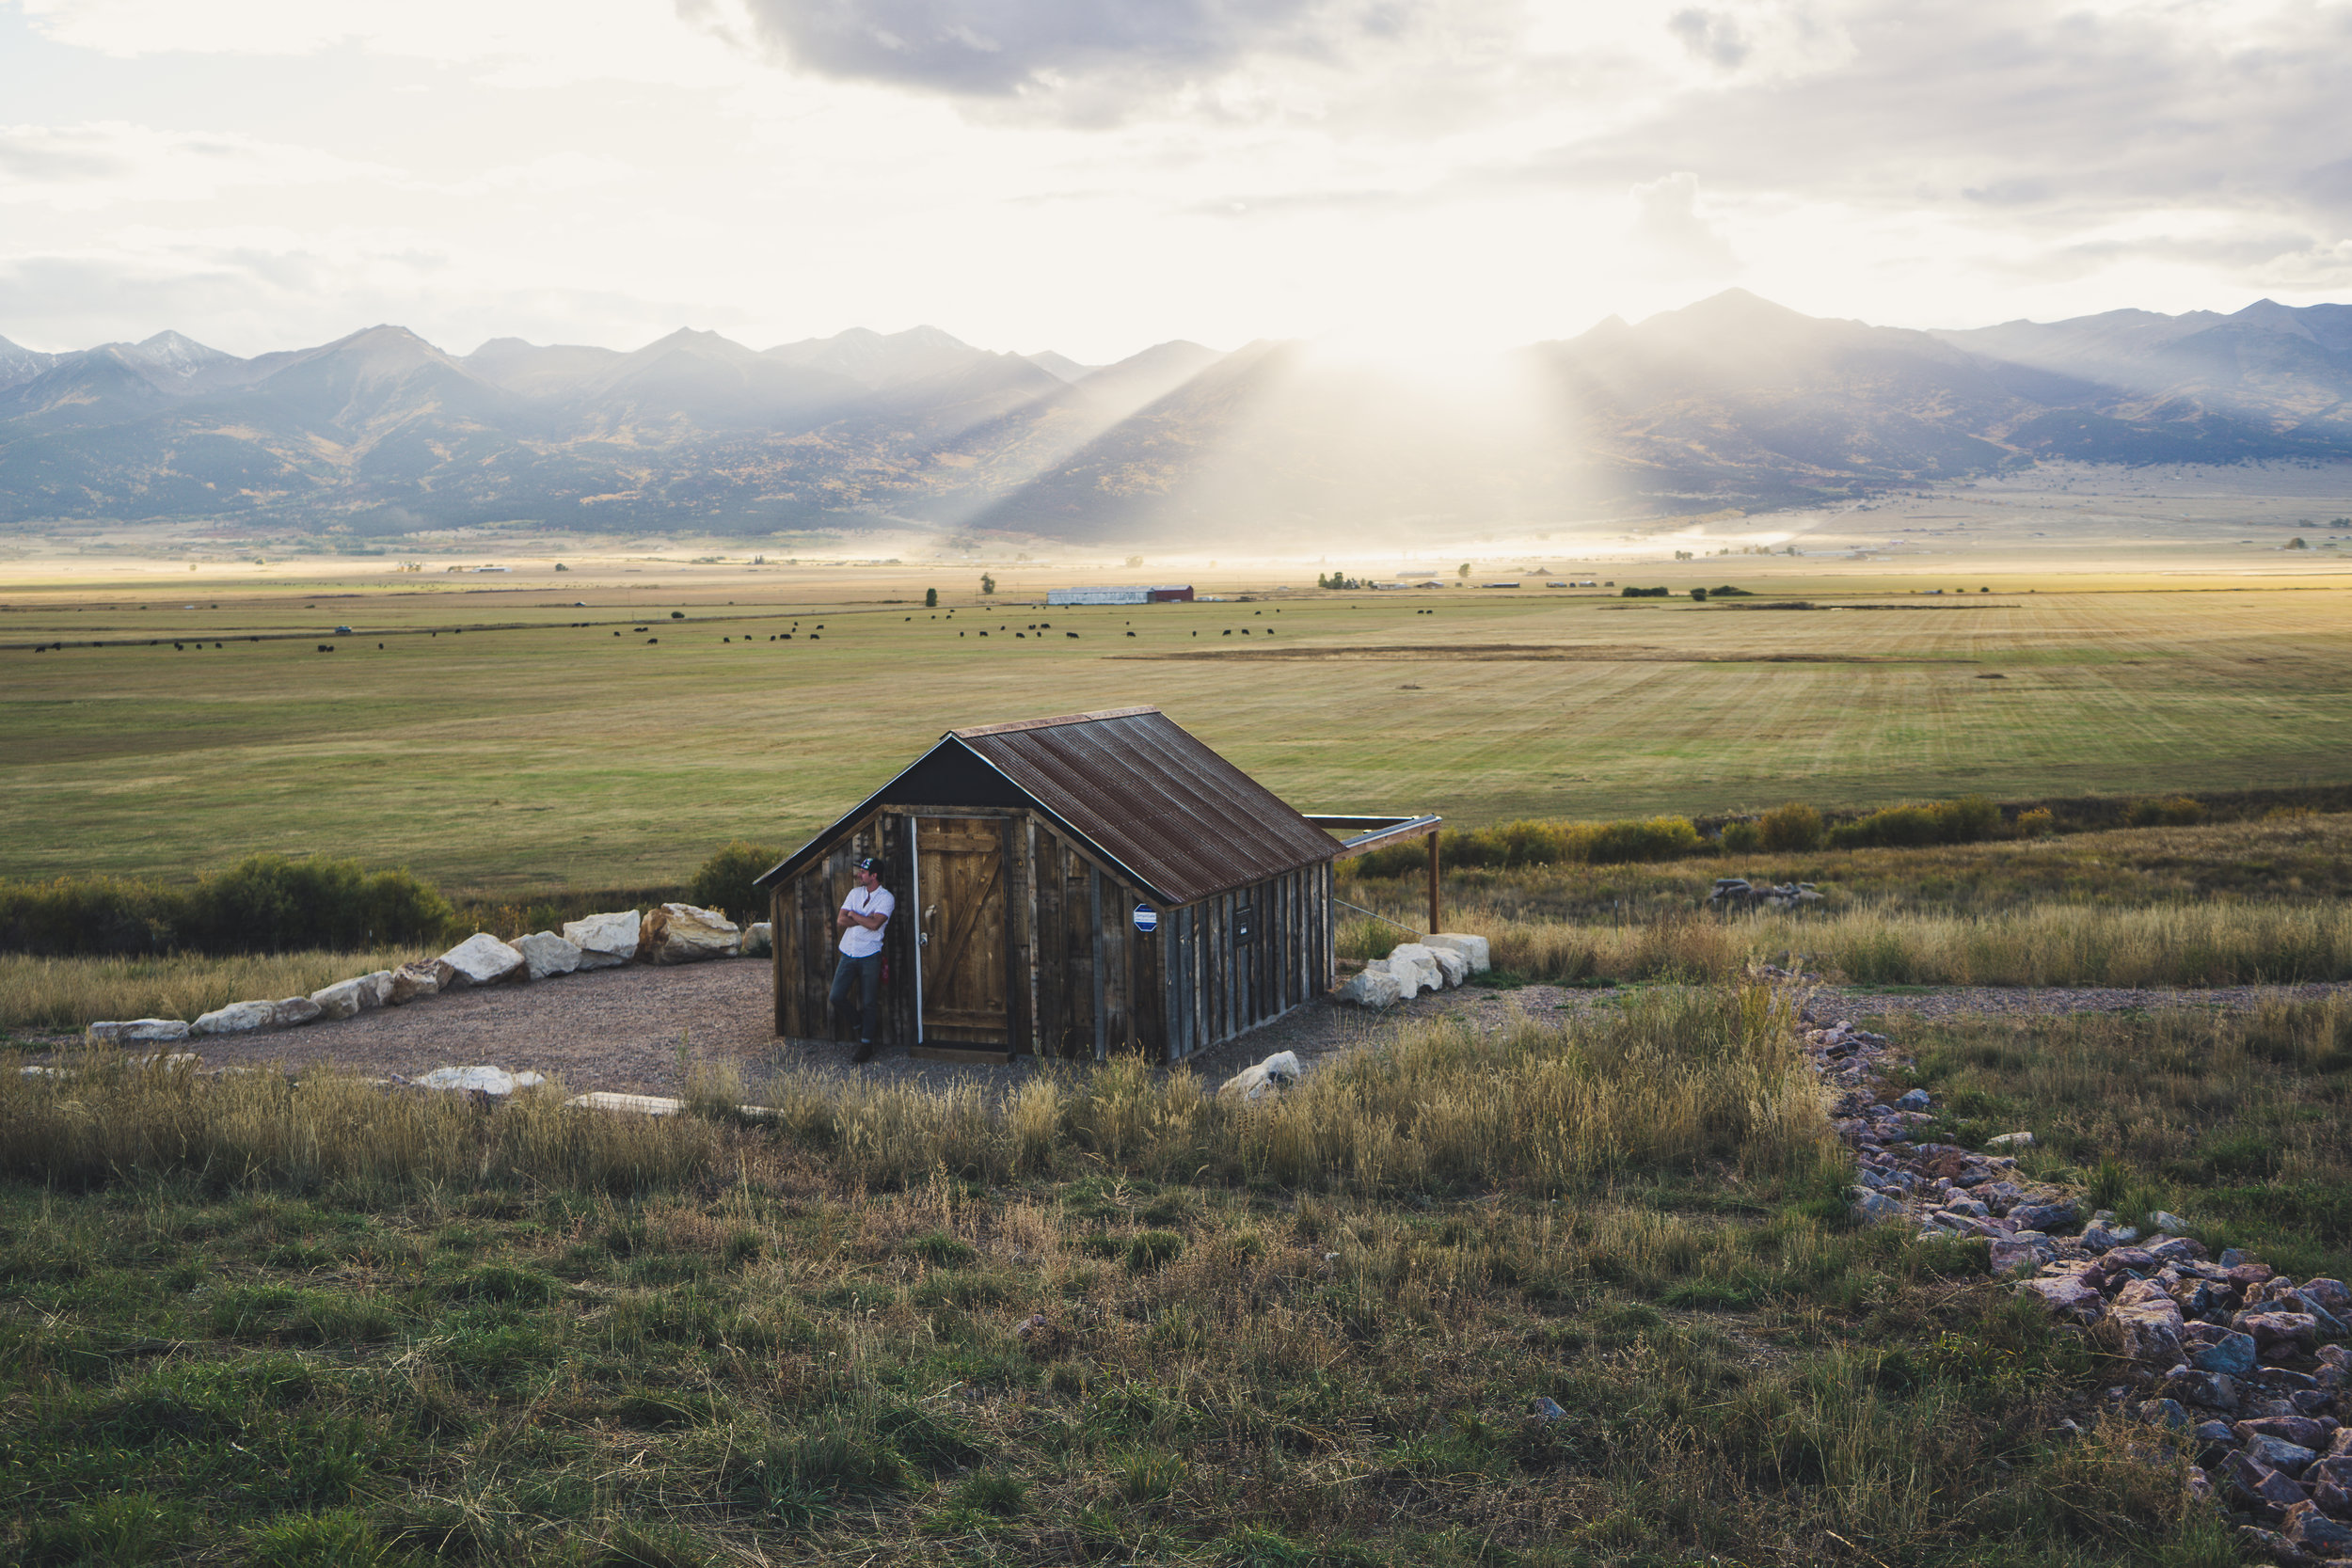 The nondescript Smokey Jack Observatory on the outskirts of Westcliffe, CO